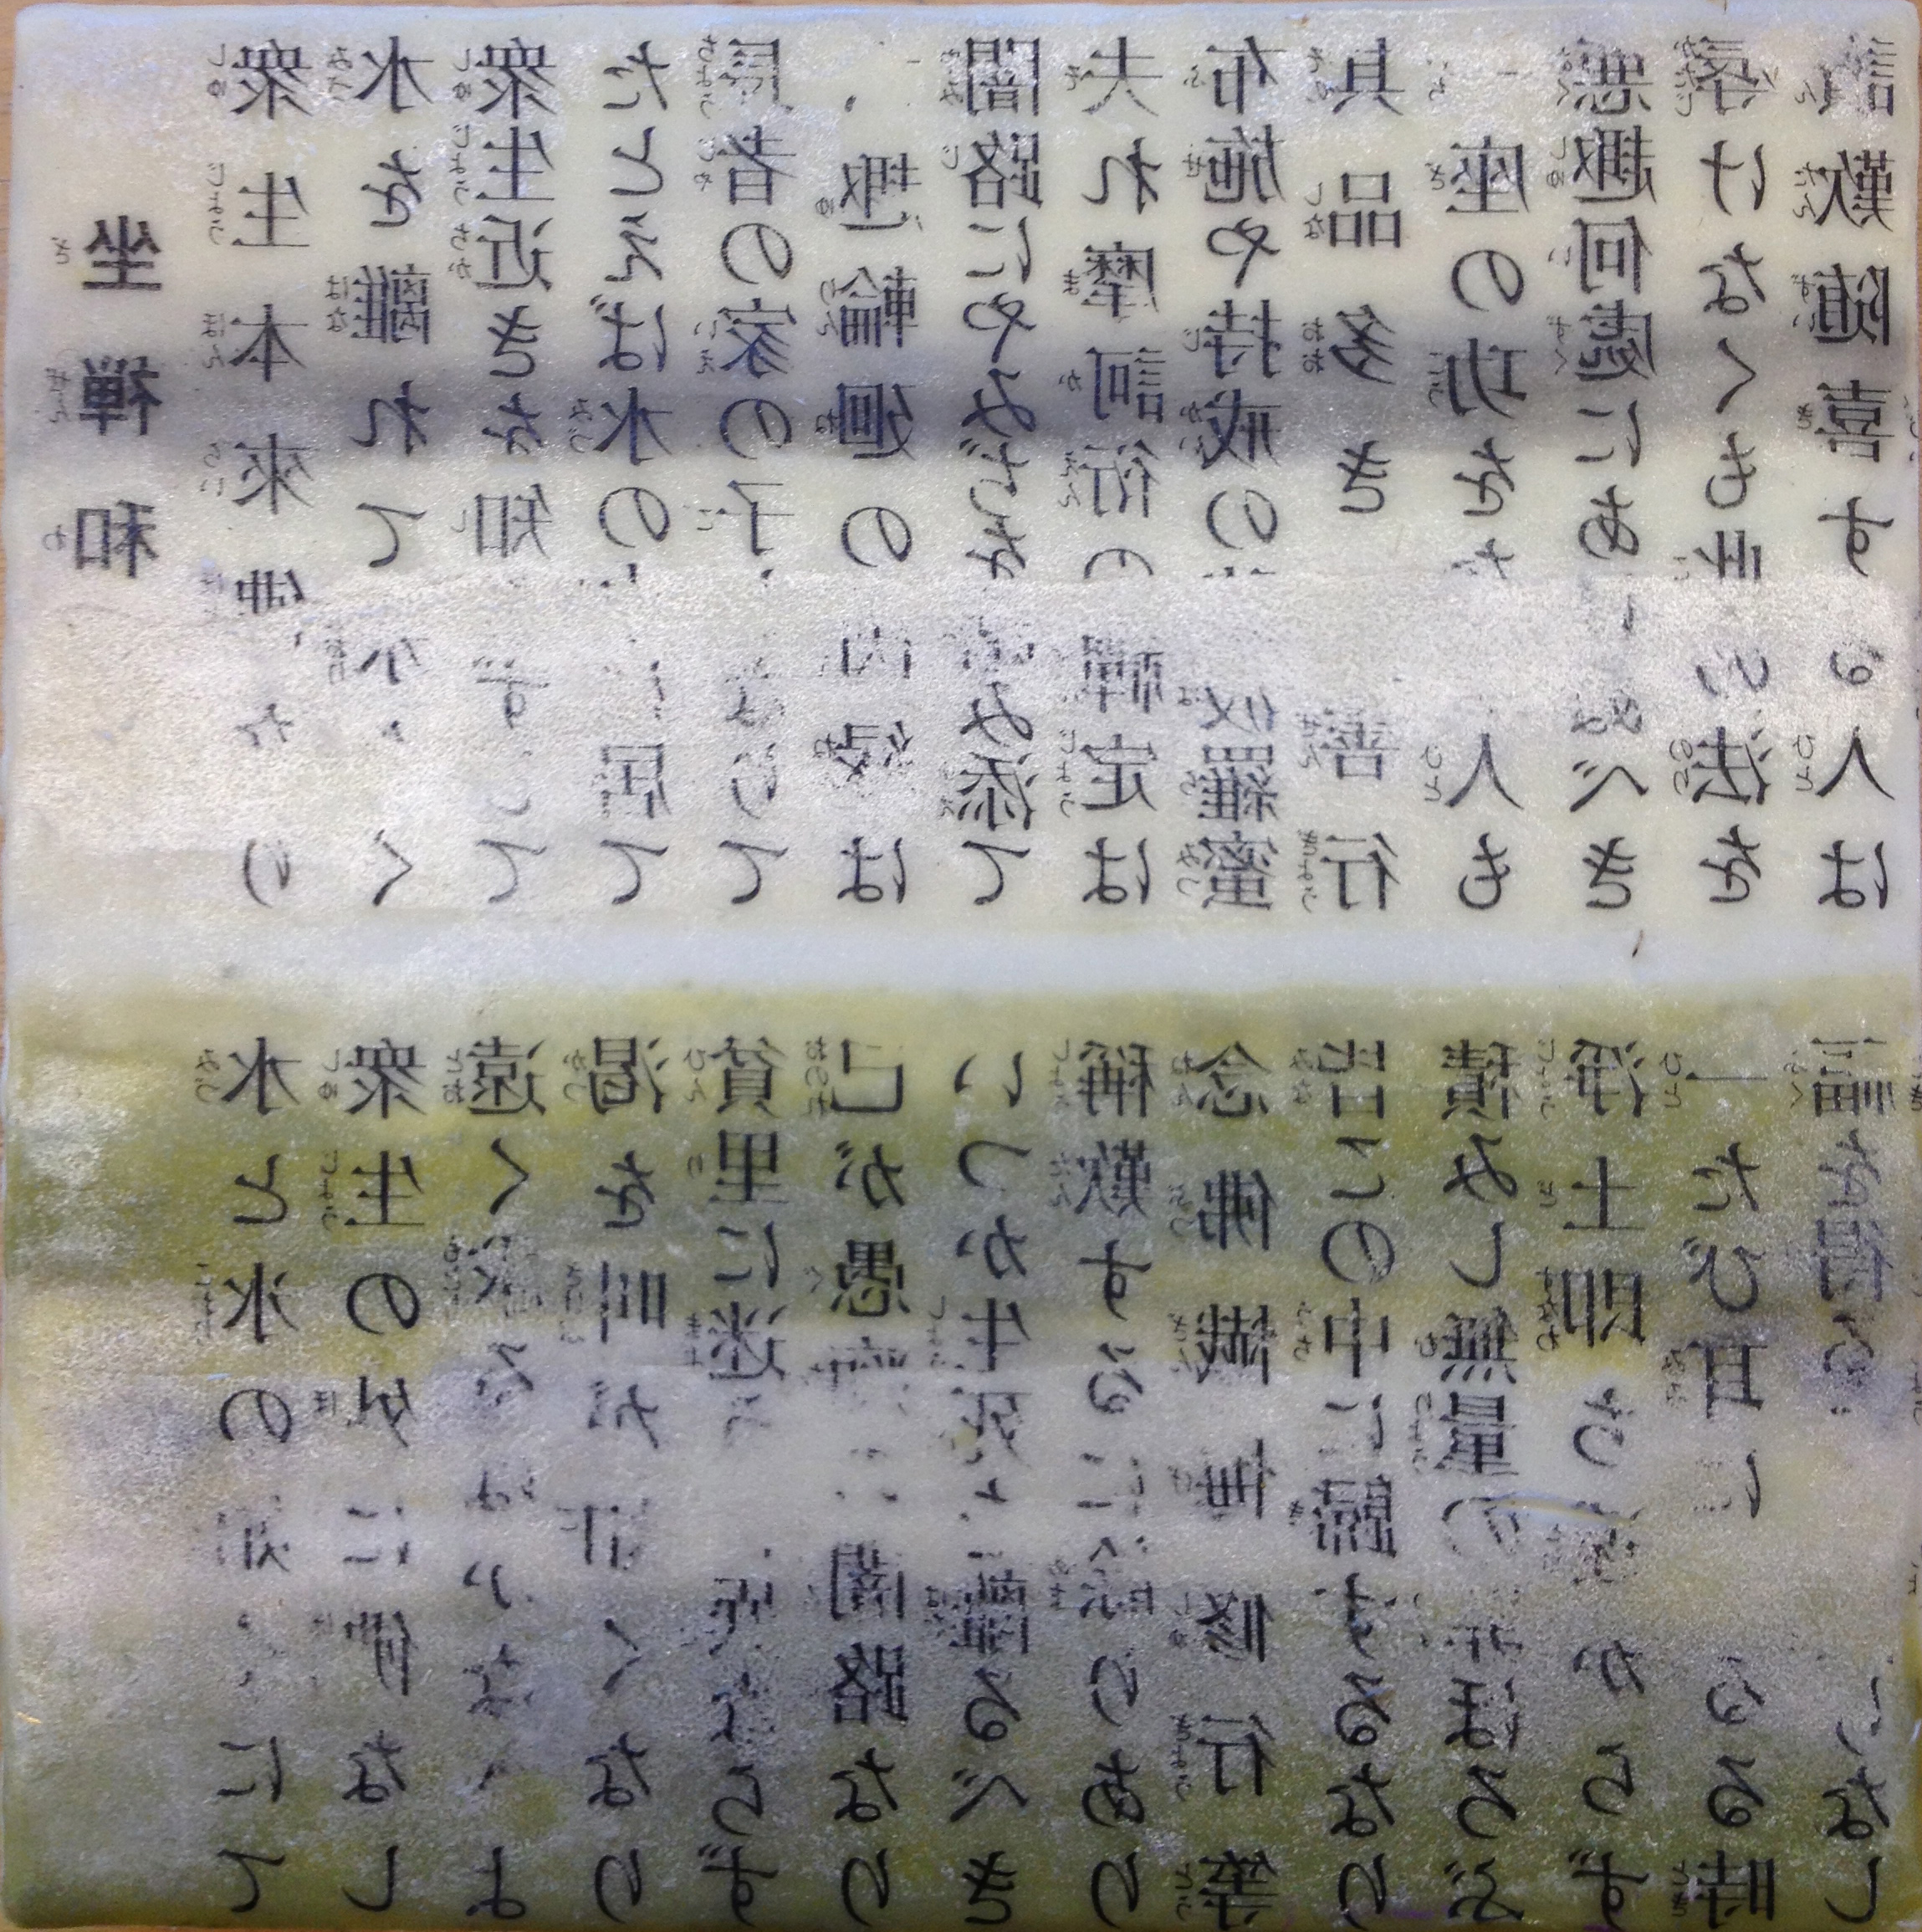 Copy of sutra